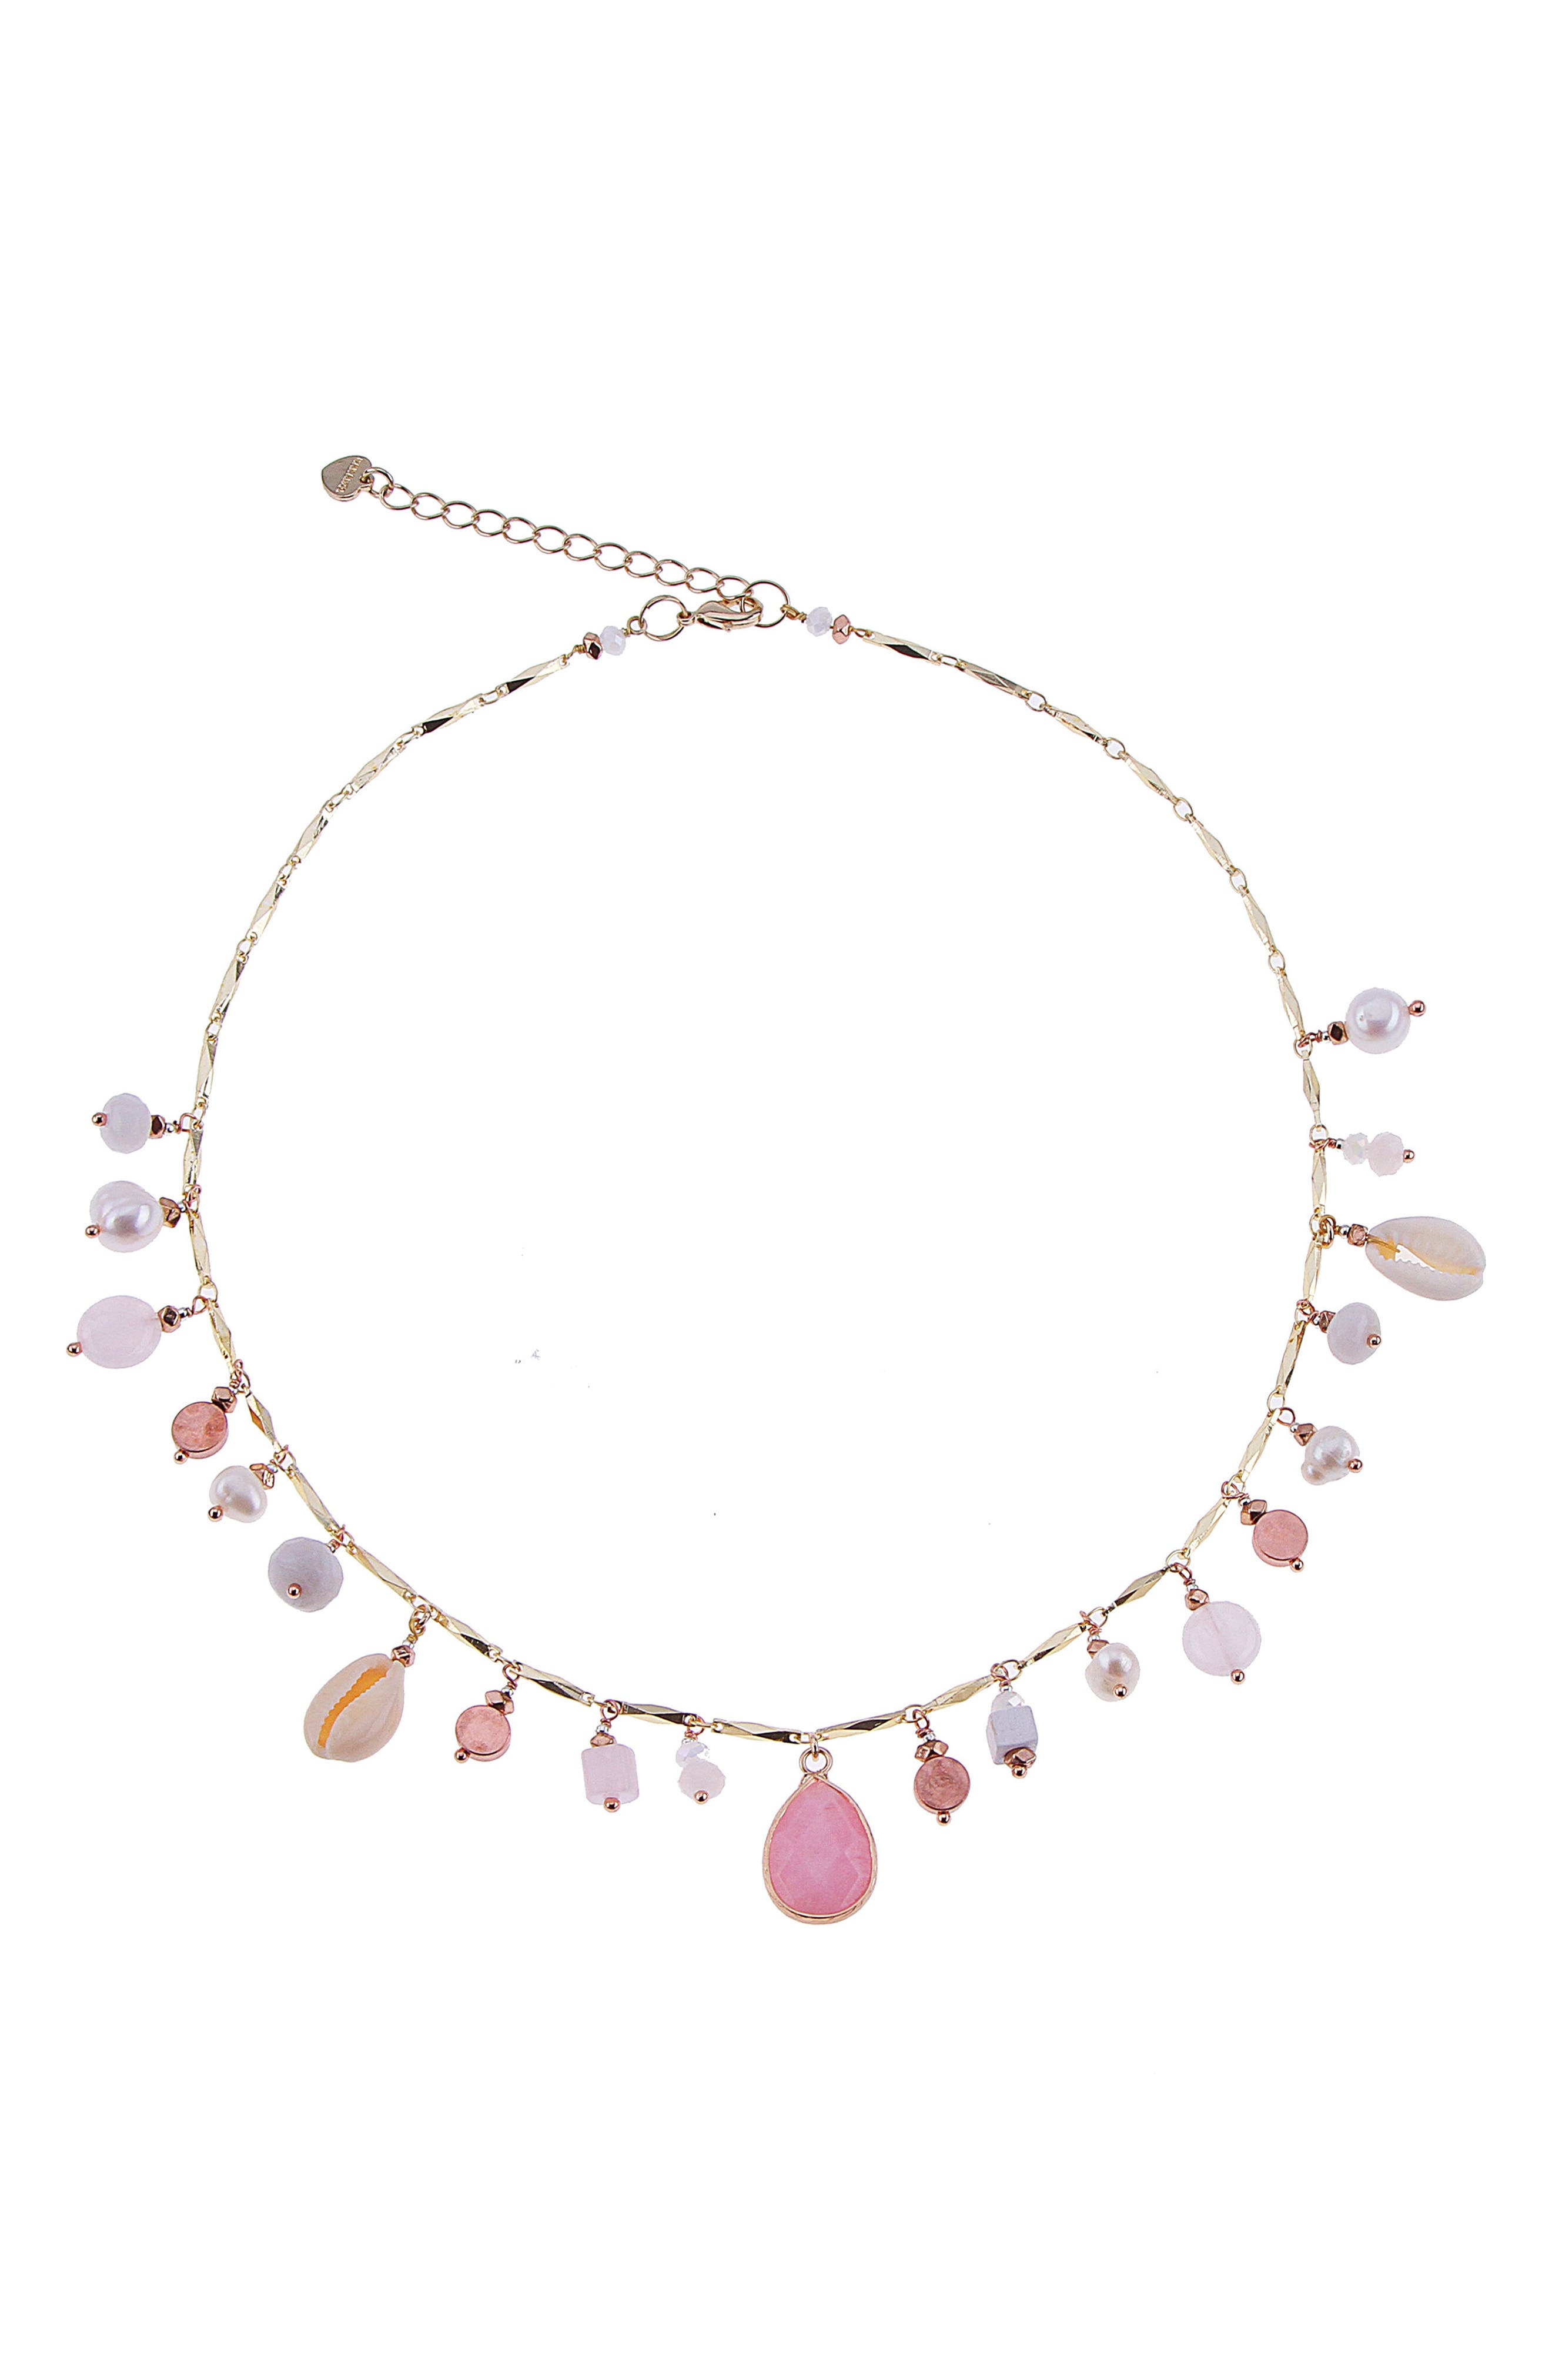 Nakamol Design Dainty Stone Freshwater Pearl, Agate & Moonstone Charm Necklace